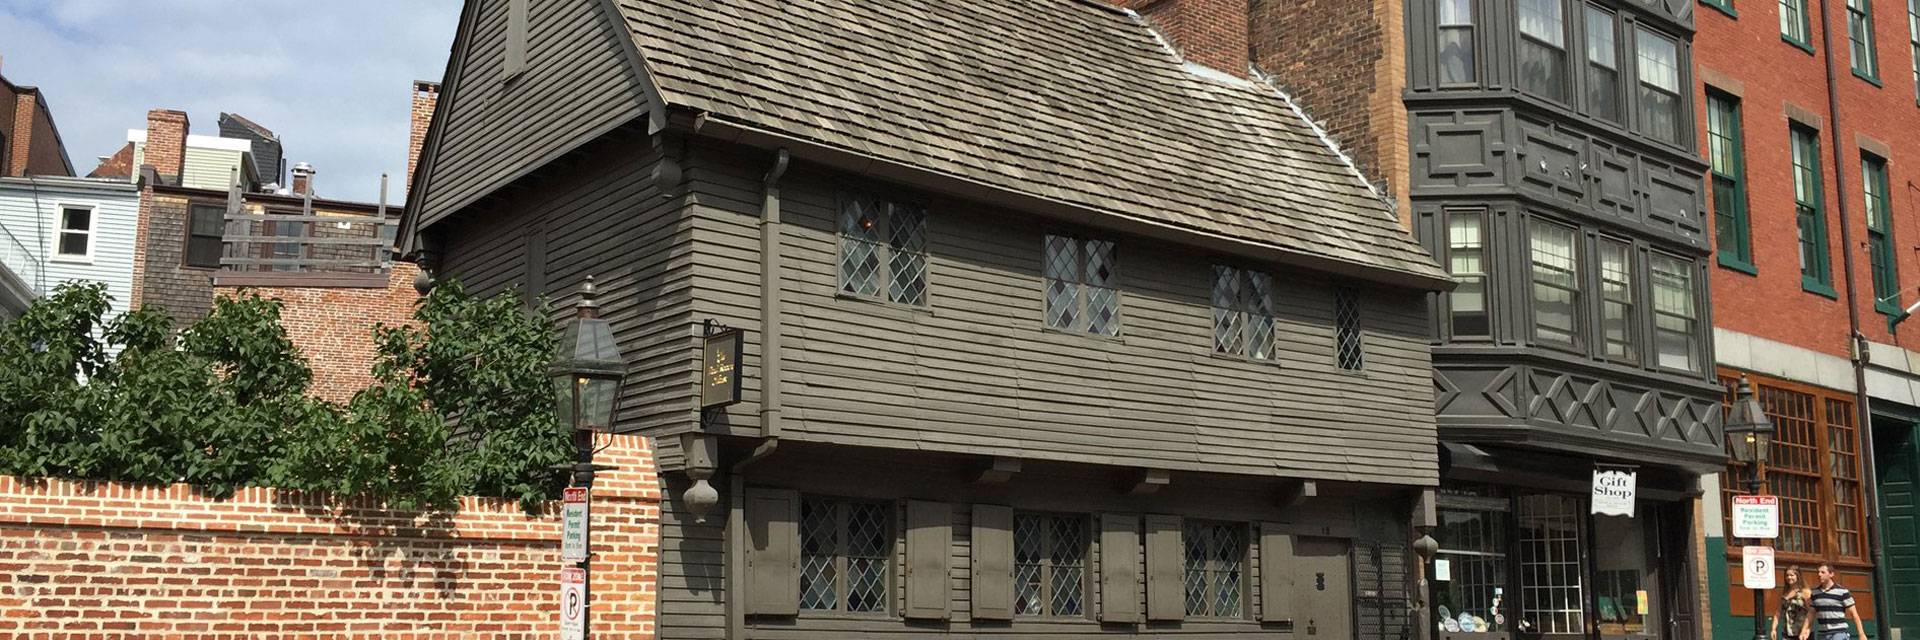 The Paul Revere House | Archer Hotel Burlington